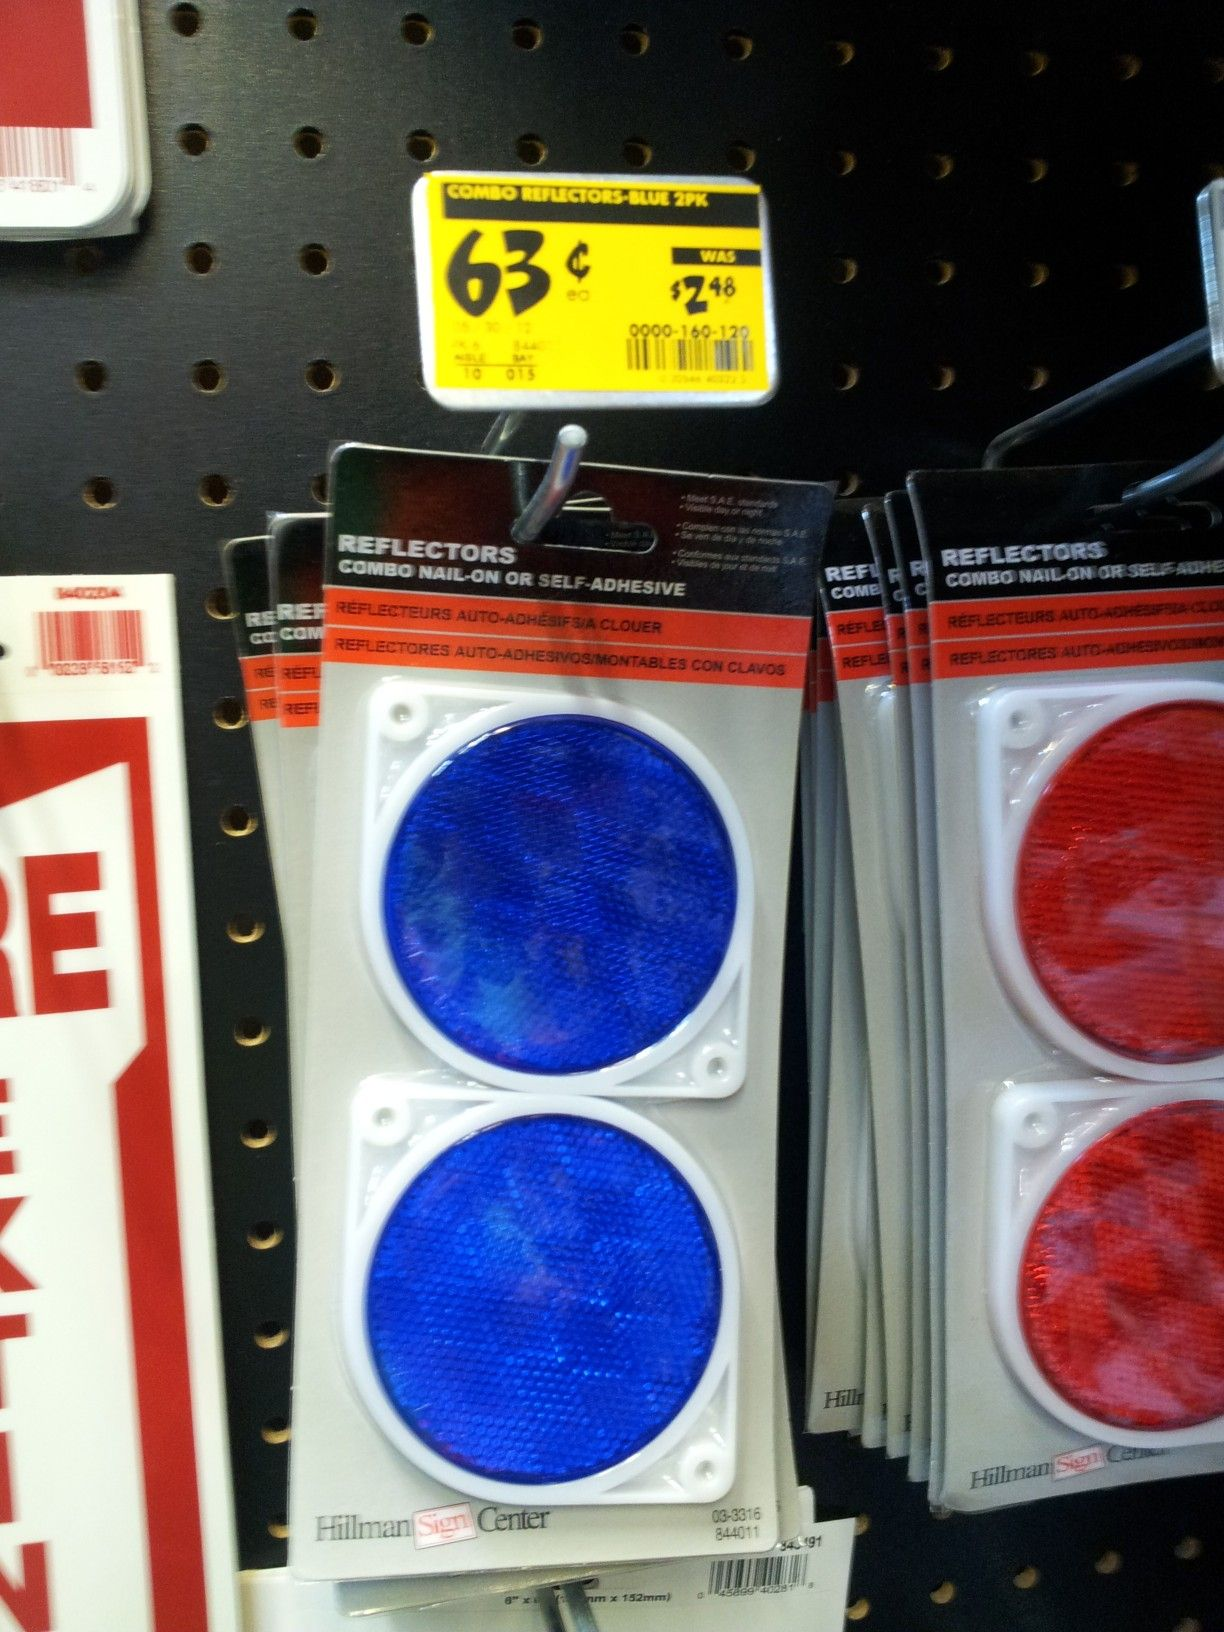 Plinko game construction hardware store and carnival buy reflectors at the hardware store for plinko chips solutioingenieria Choice Image